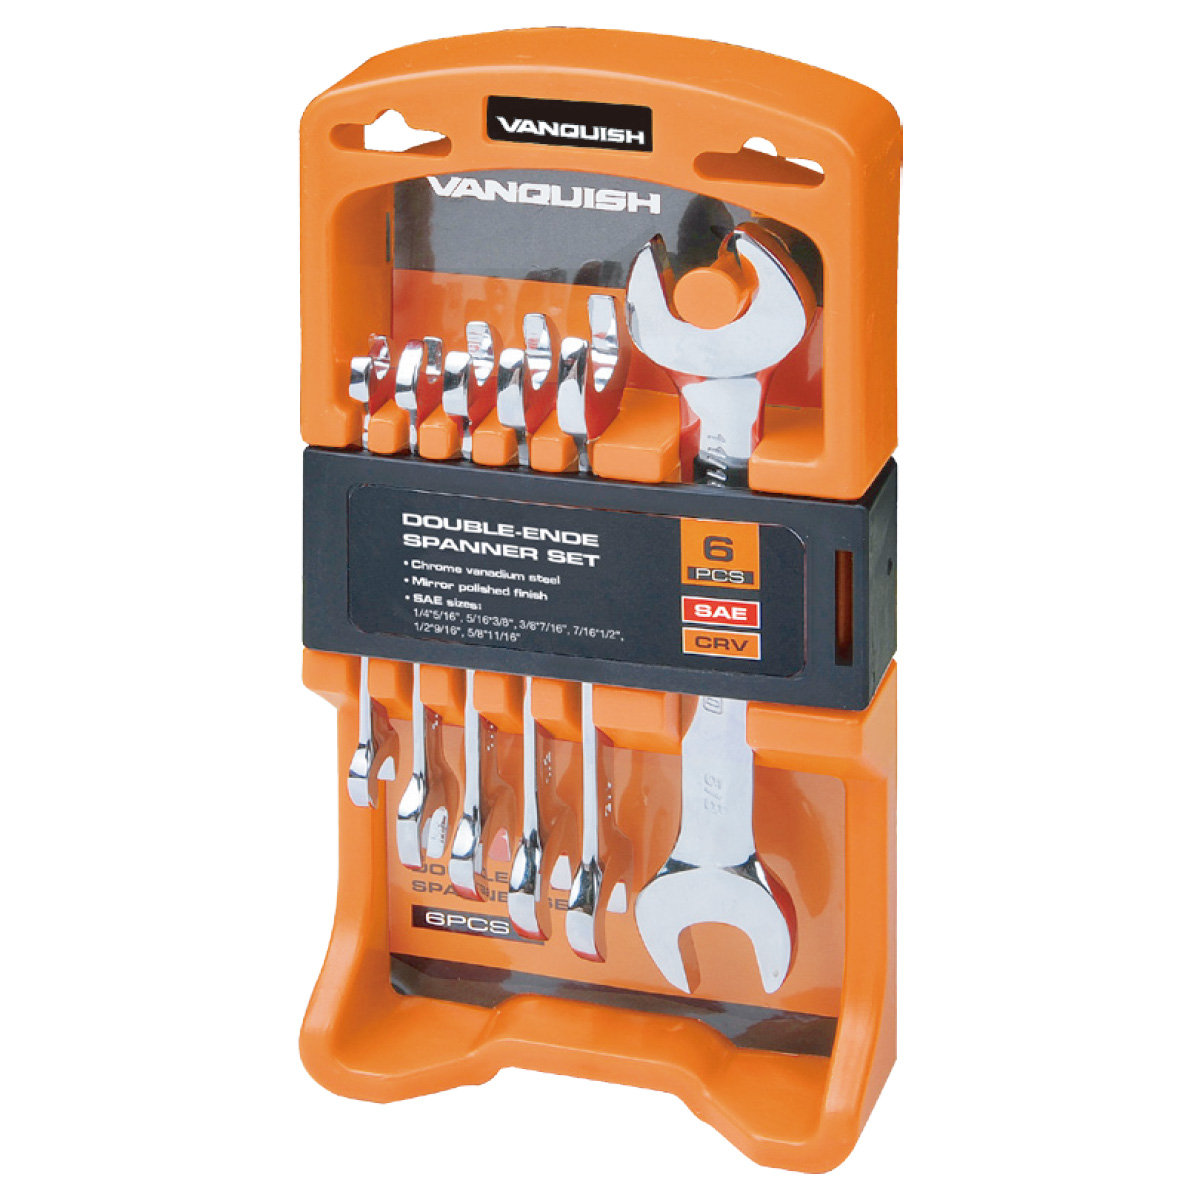 6-PIECE DOUBLE-ENDED  SPANNER SET